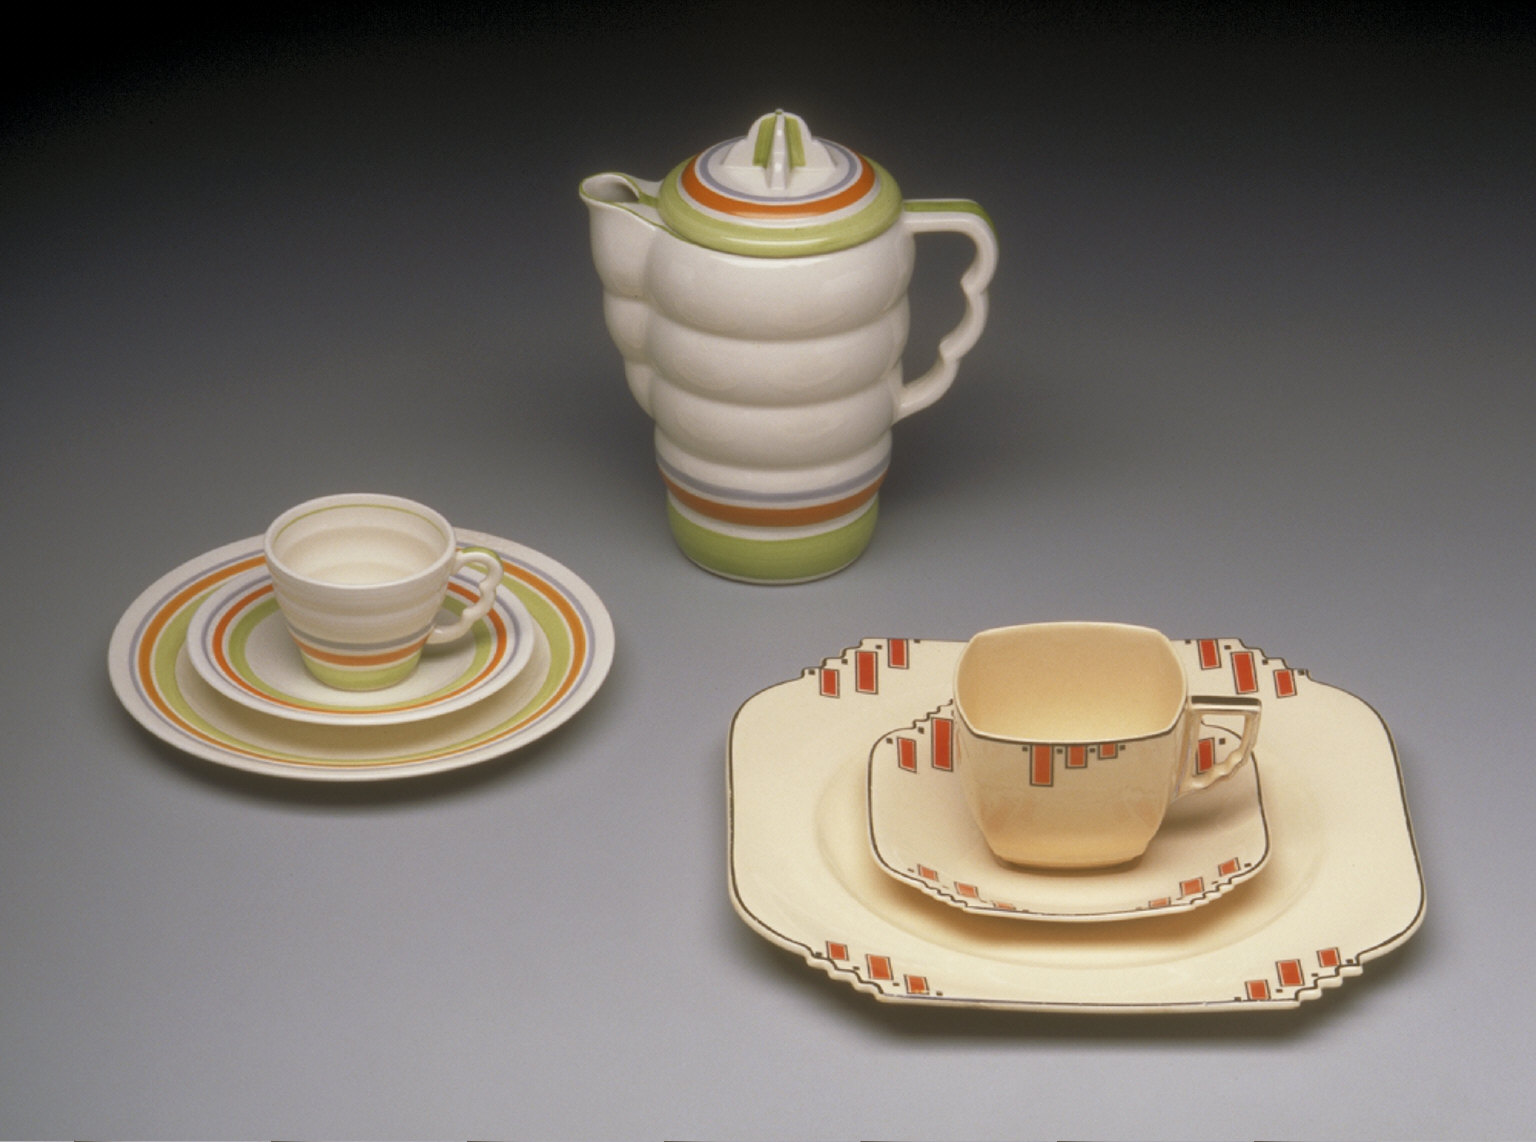 'Ultra' shape cup and saucer with 'Red Tower' pattern